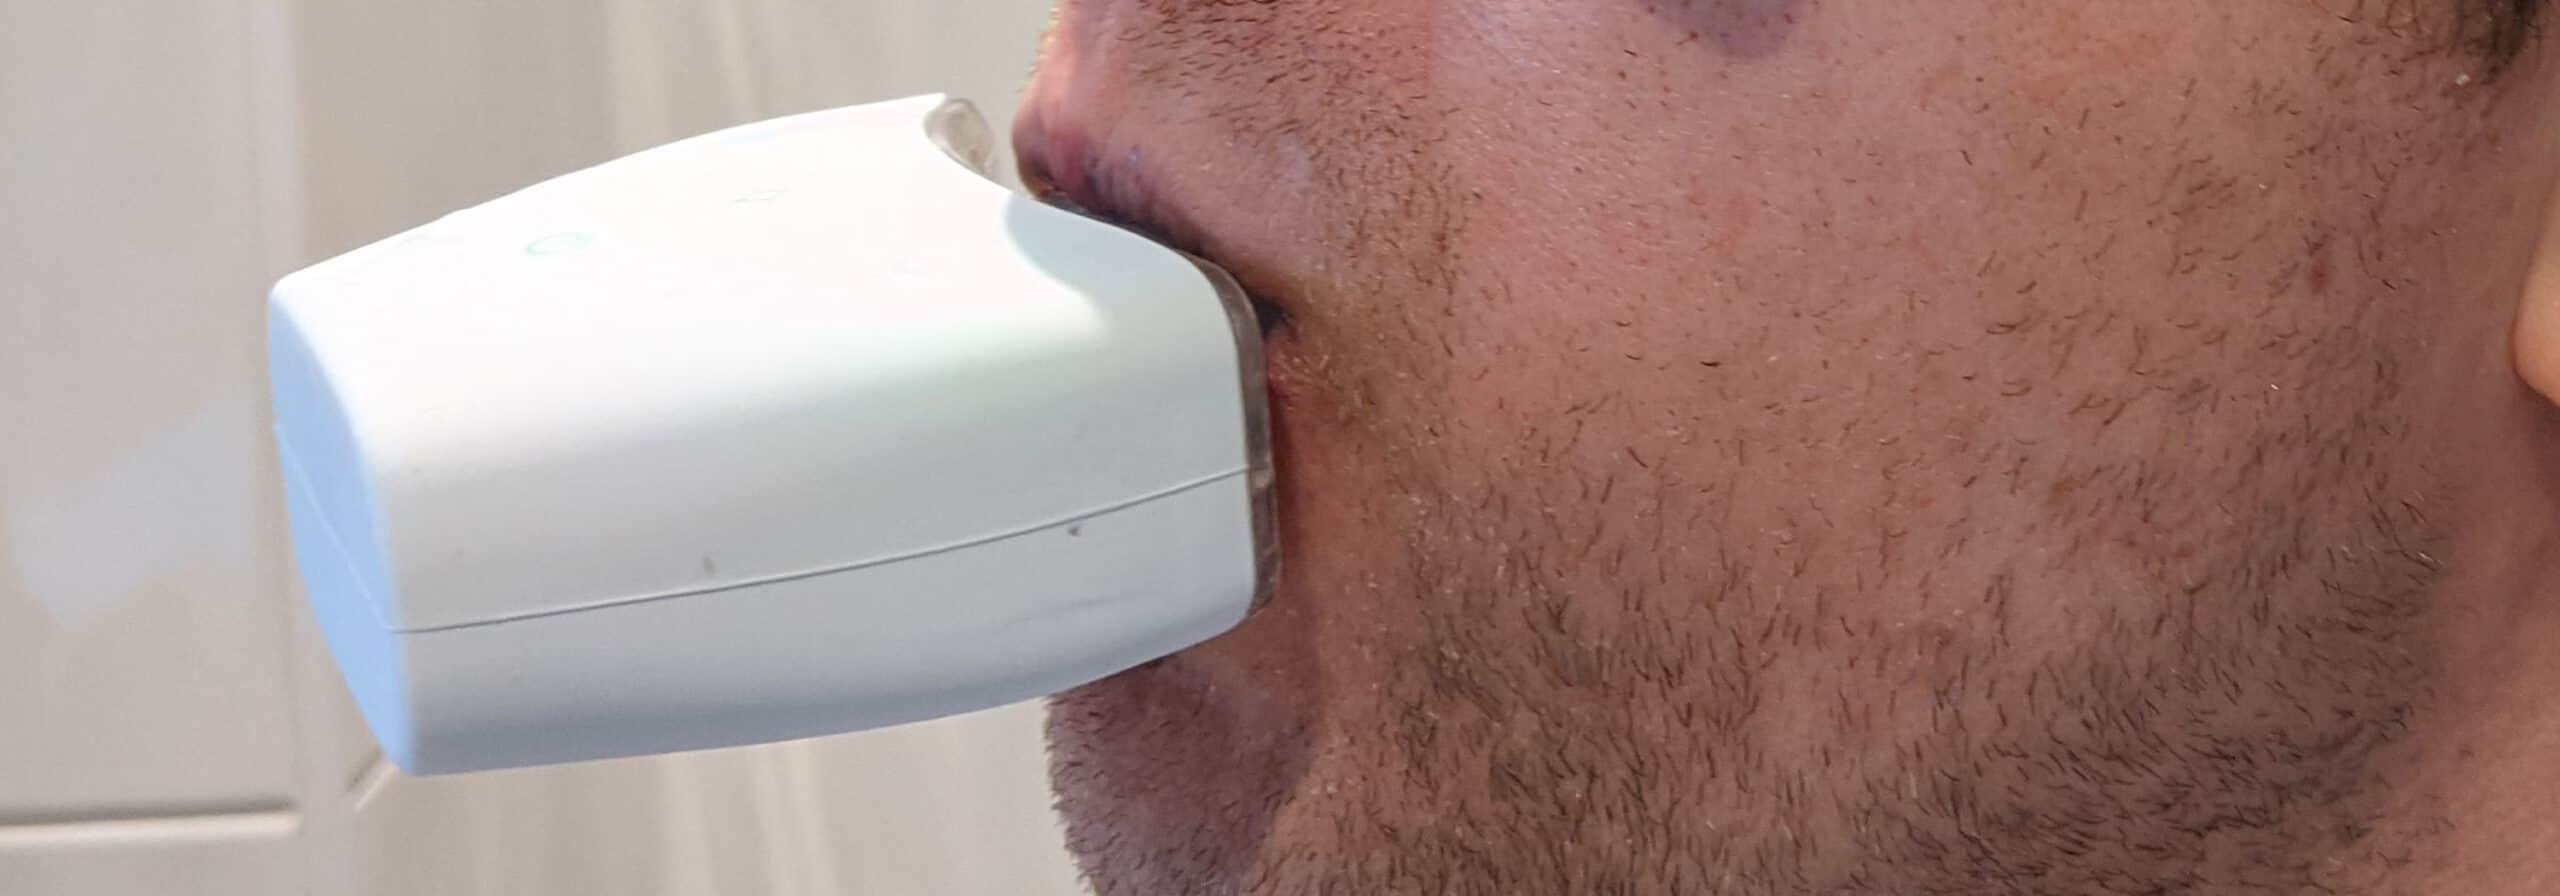 AutoBrush V4 in Mouth - Side view